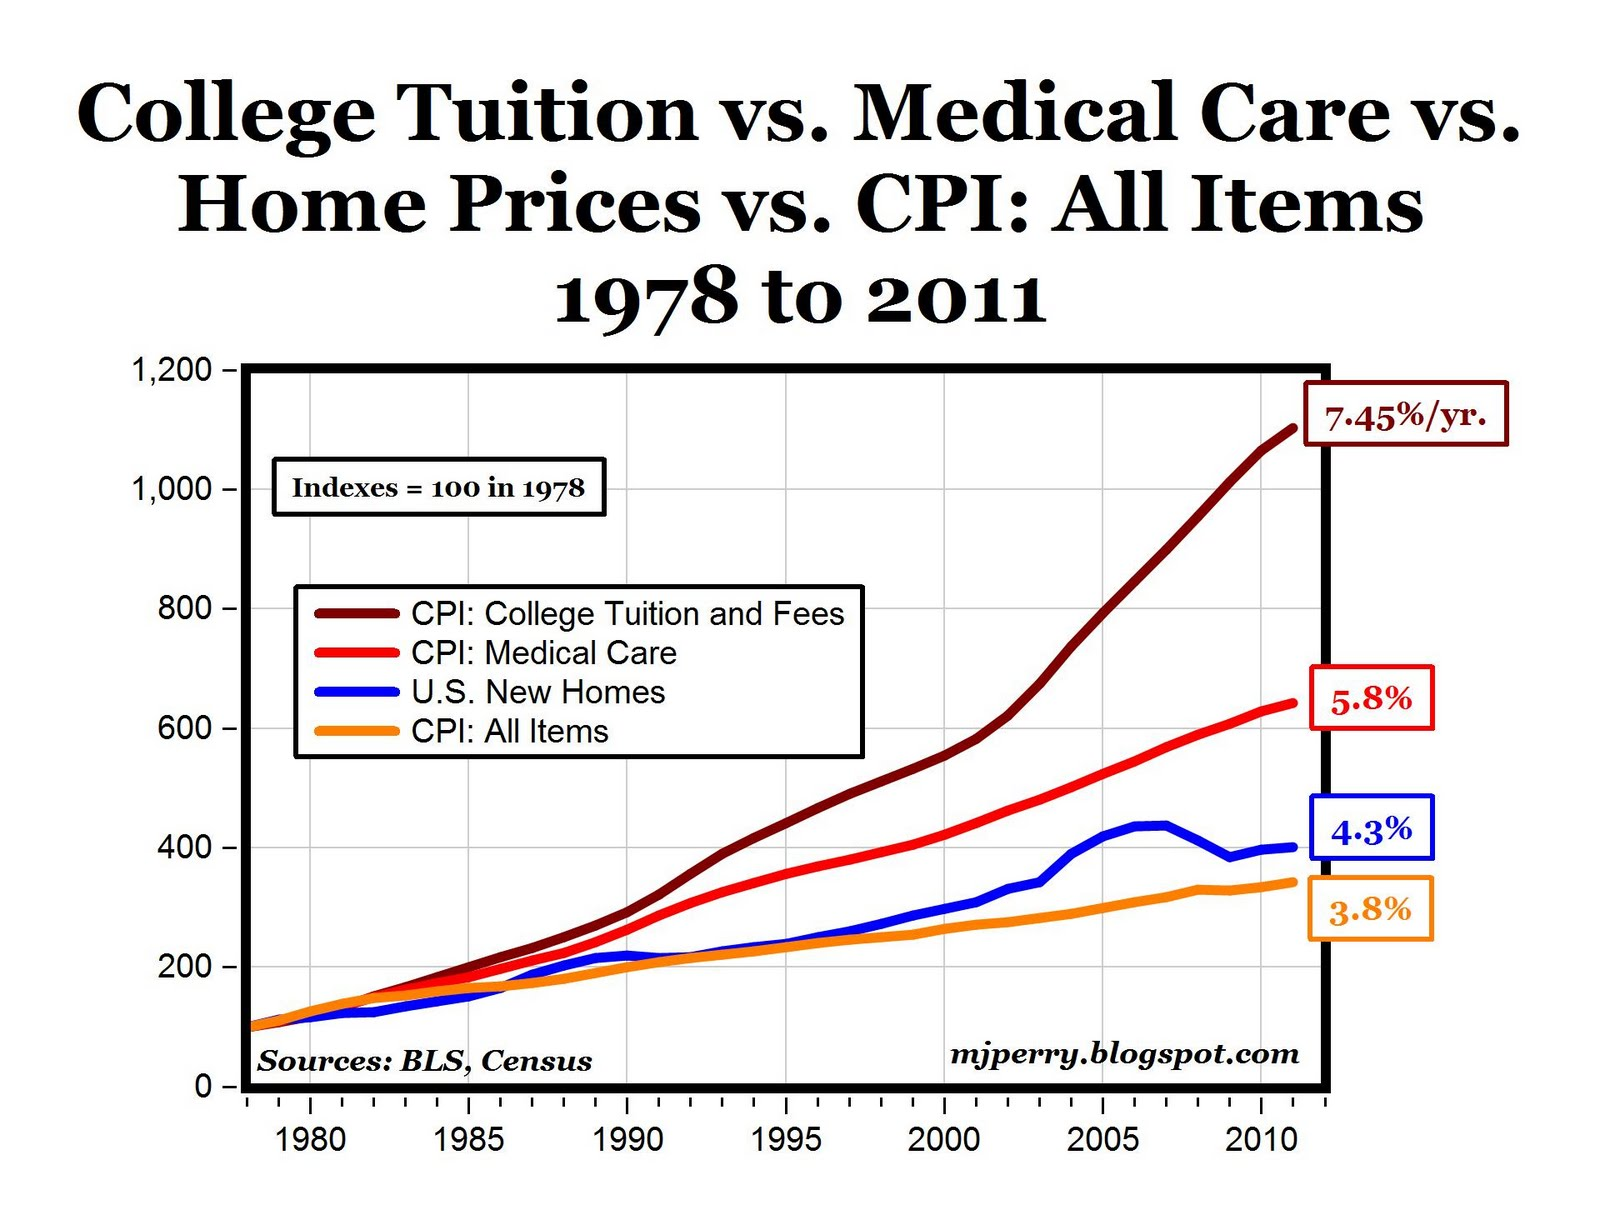 Government-funded colleges were tuition free until around the start of the Vietnam War. Since then, this has priced many out of advancing their educational goals. This hurts all of us.